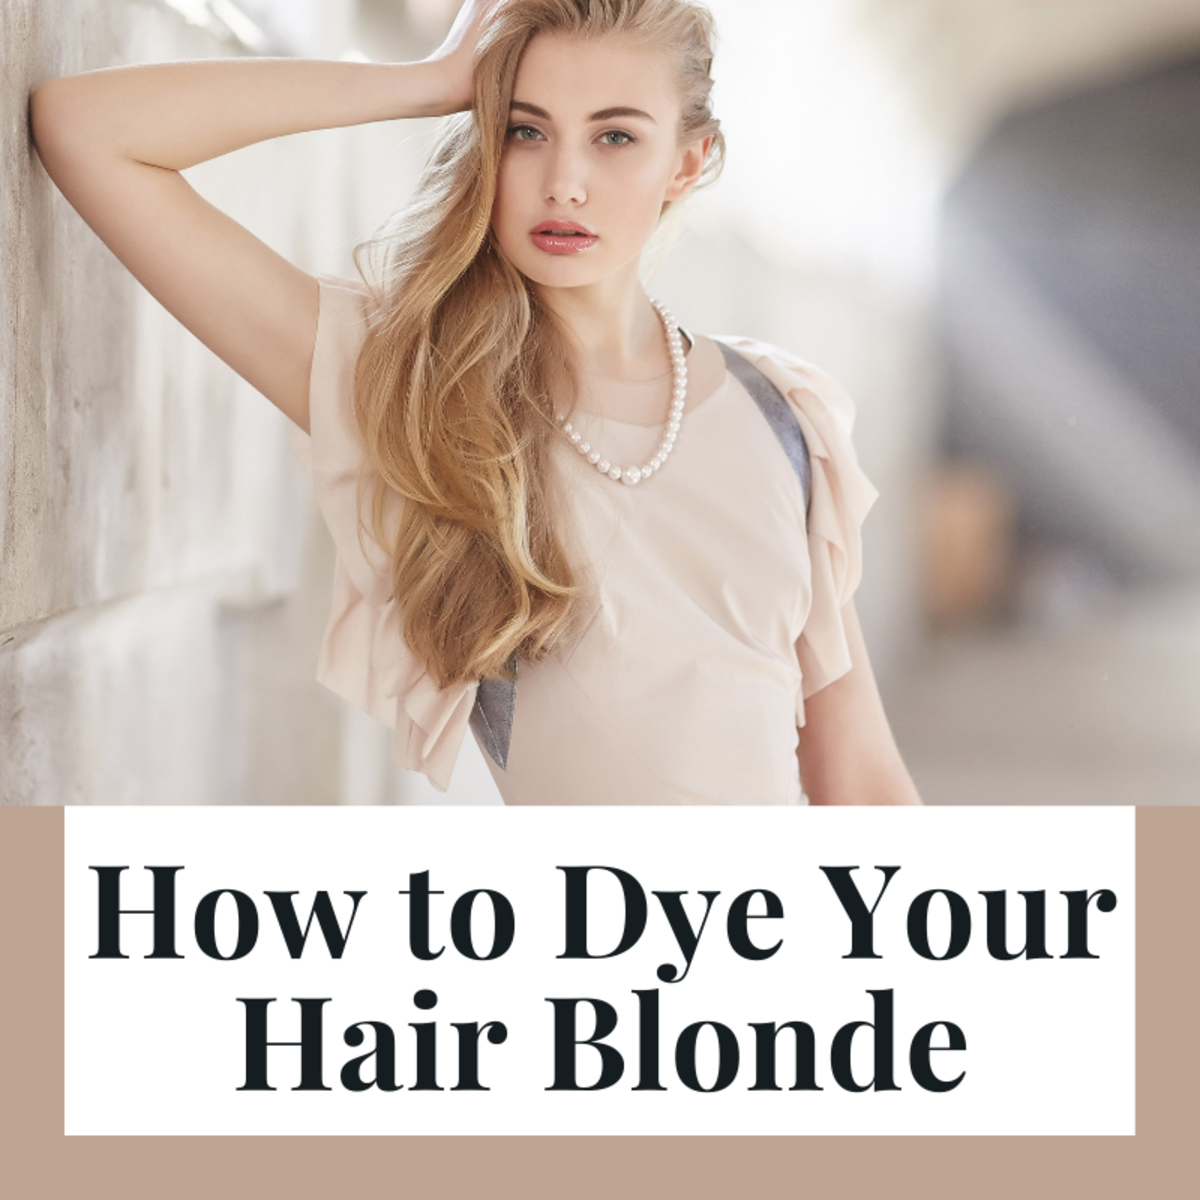 Everything you need to know to successfully dye hair blonde at home.